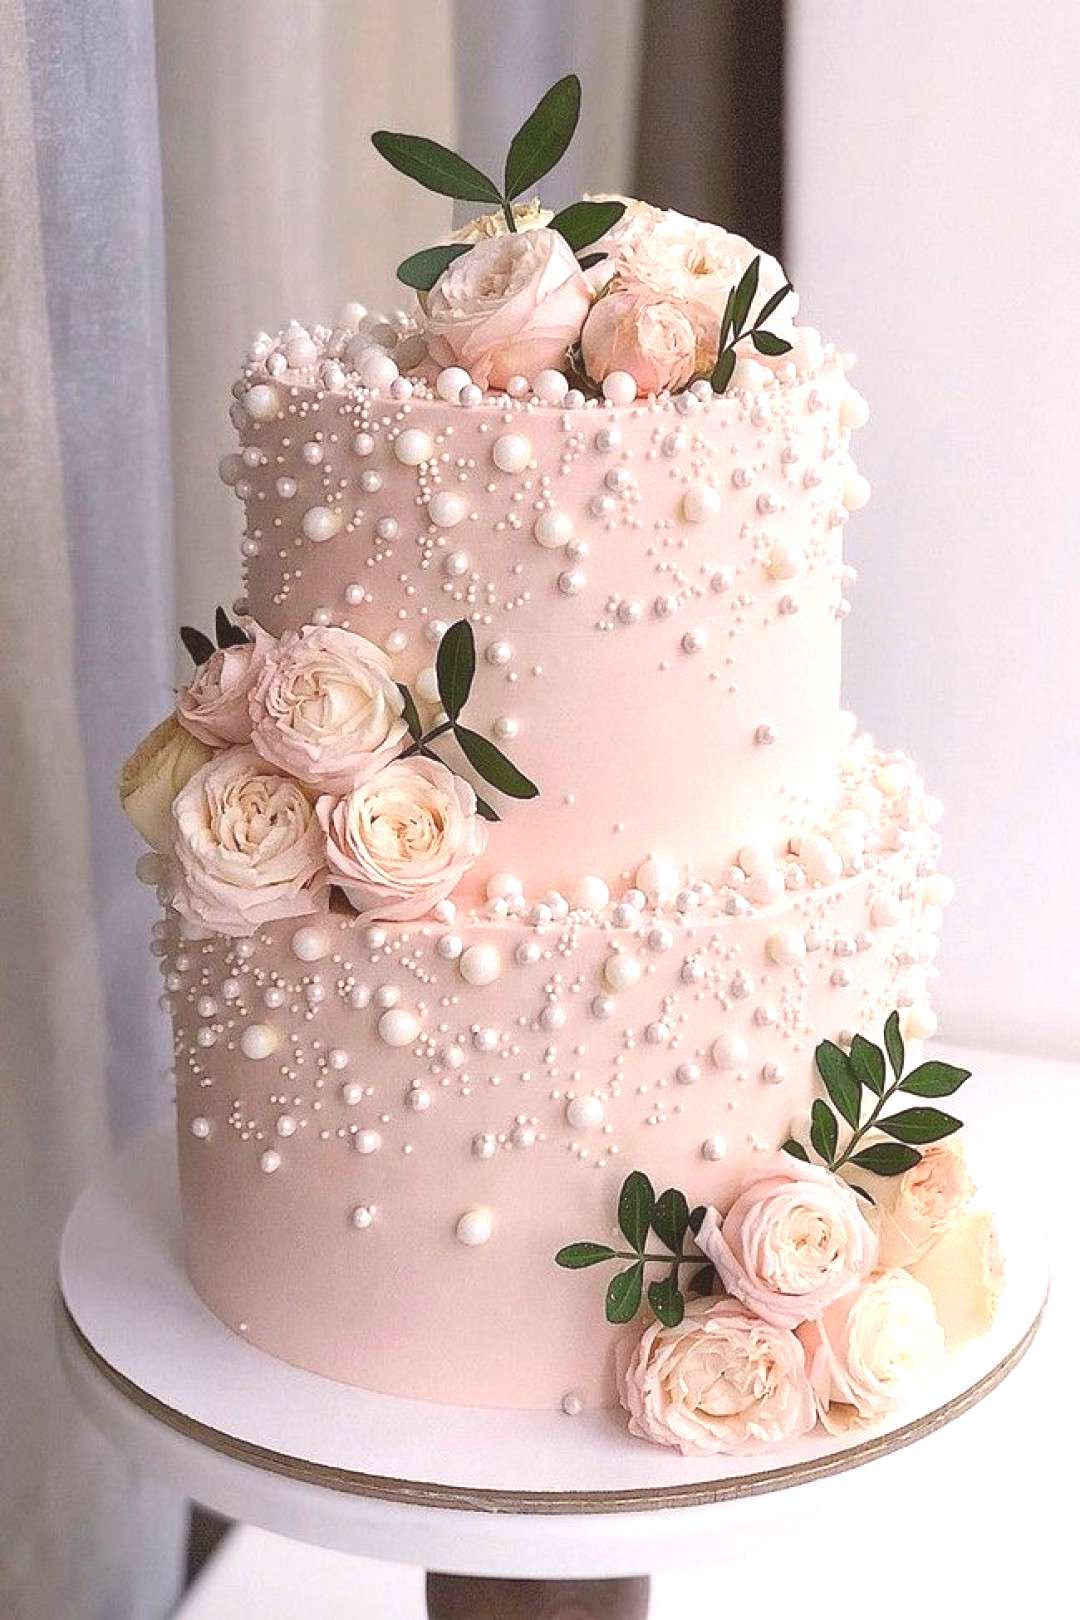 The 20 Most Beautiful Wedding Cakes -  -